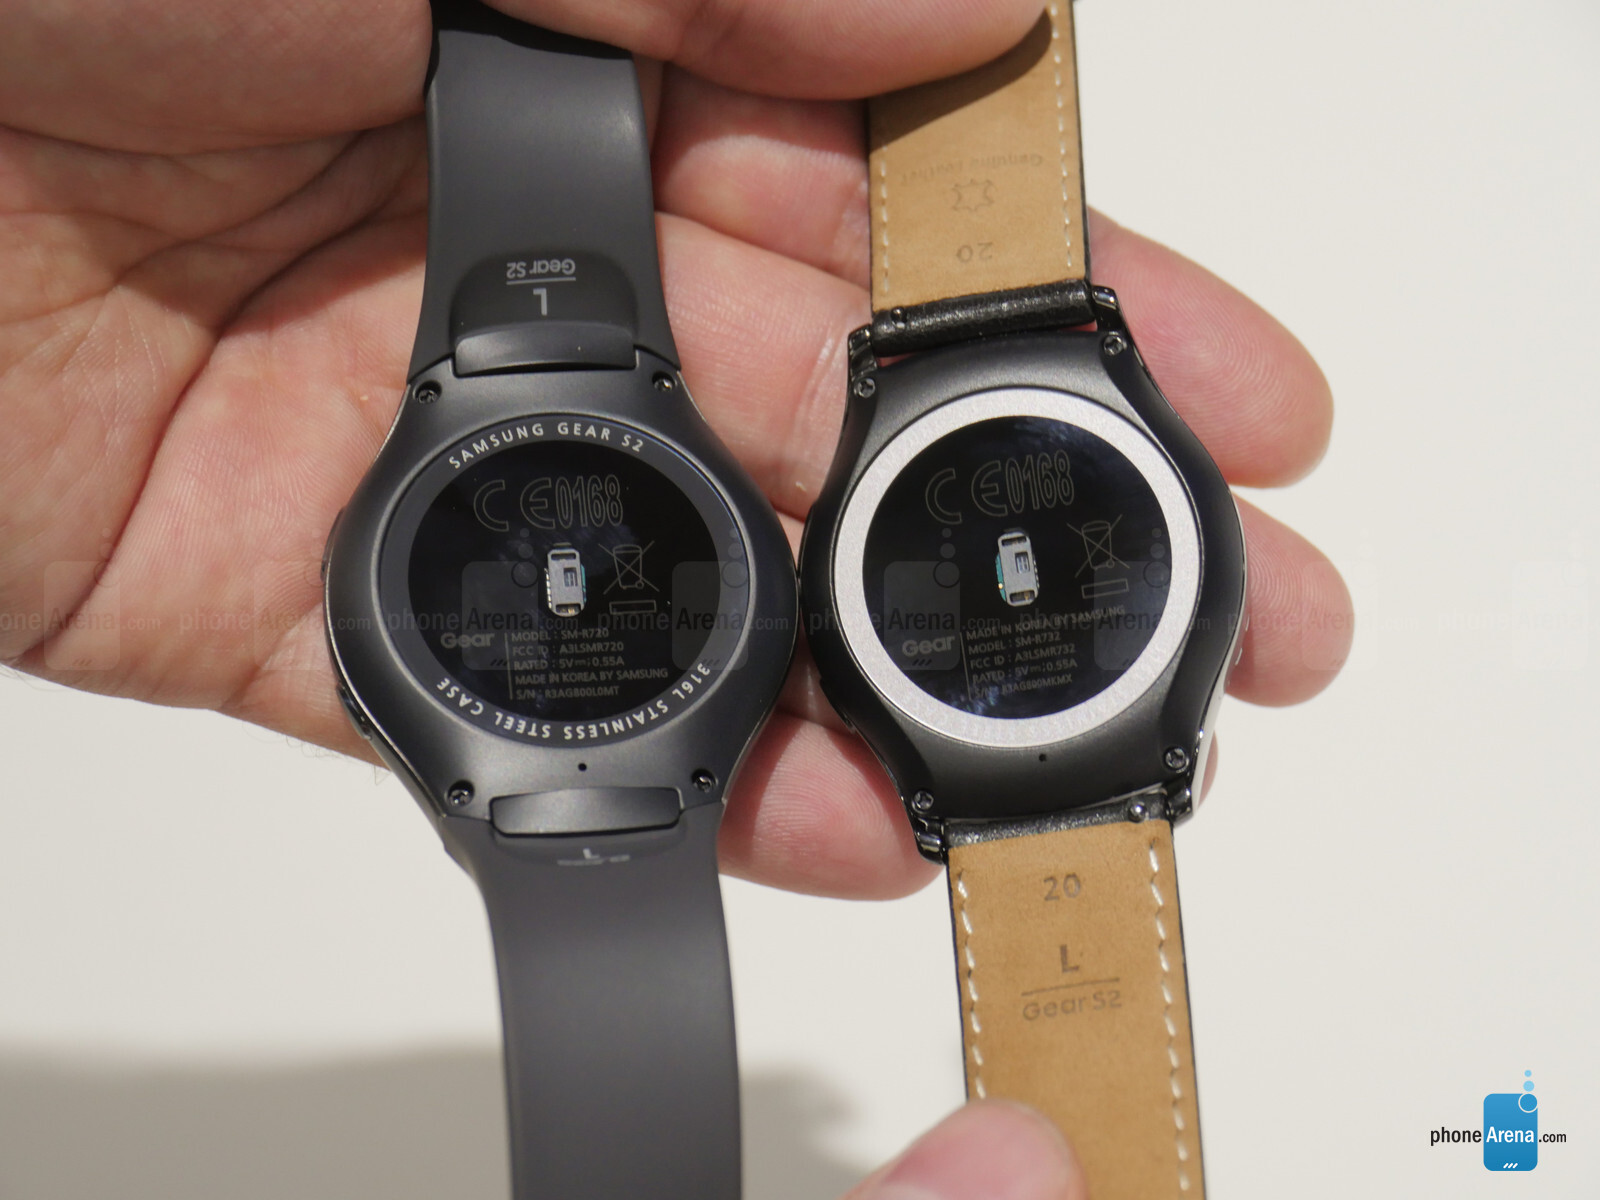 Samsung Gear S2 and S2 Classic will be launched on October 2 in Canada